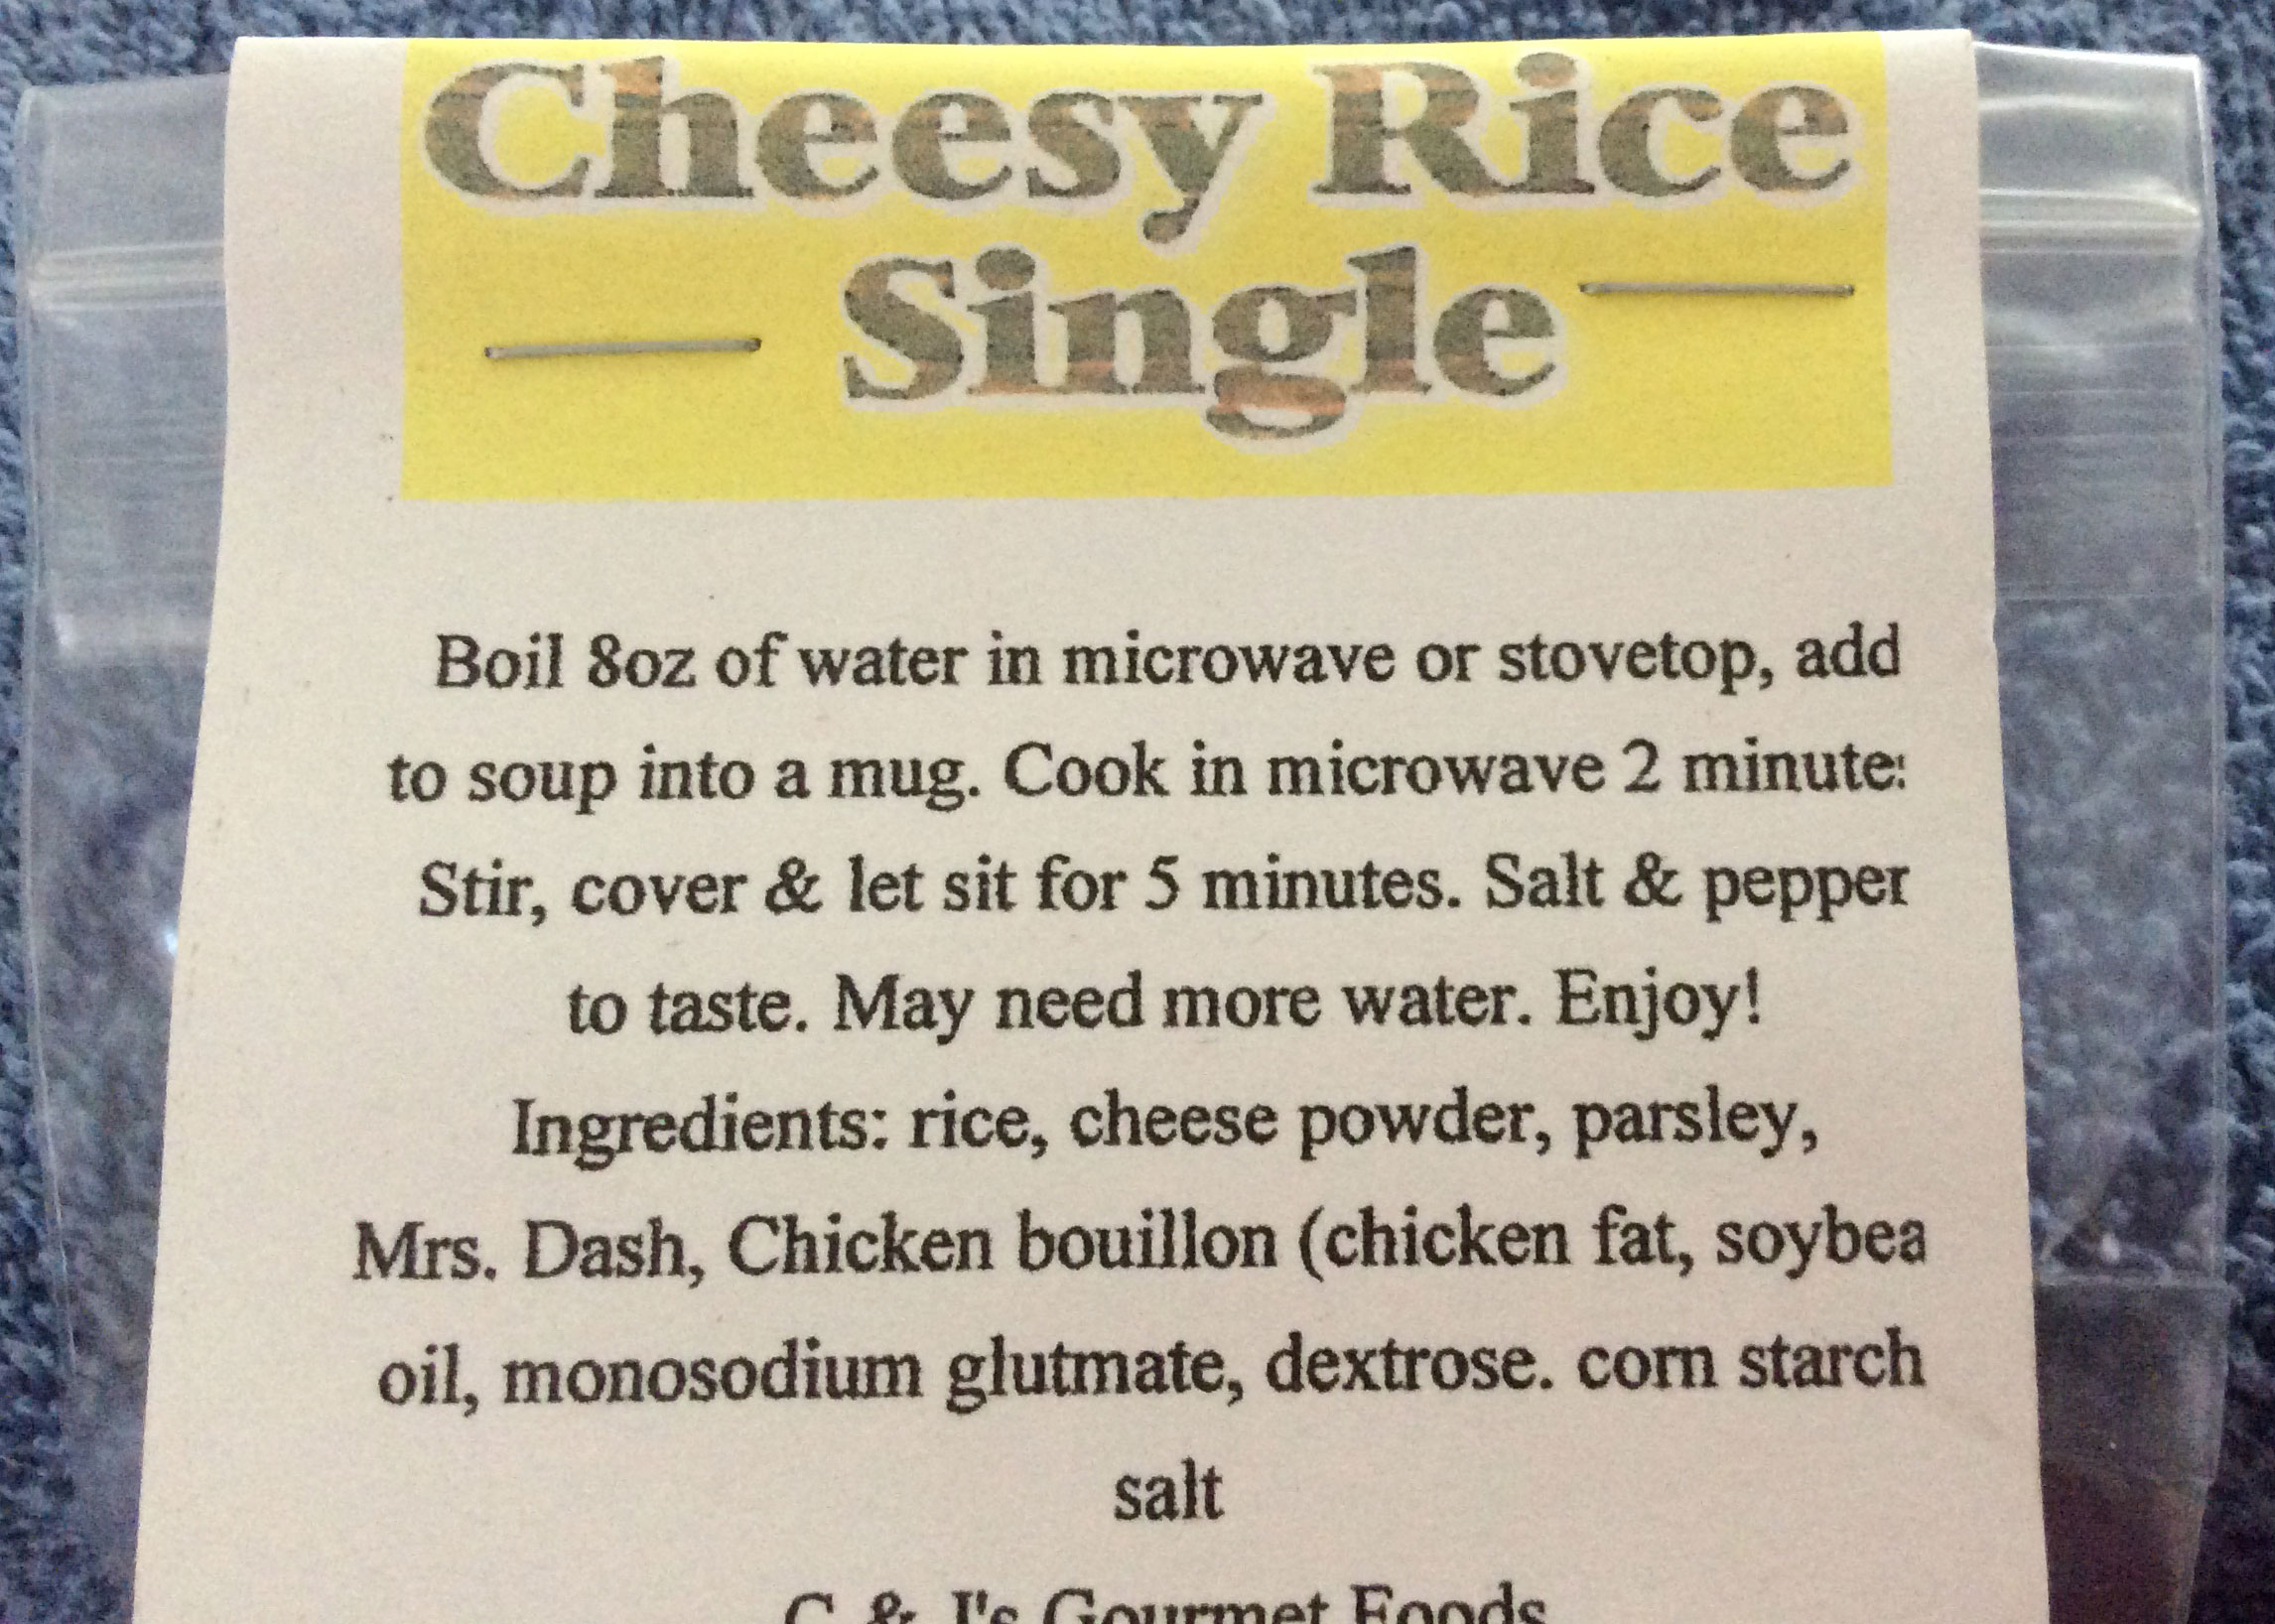 CHEESY RICE SINGLE SOUP